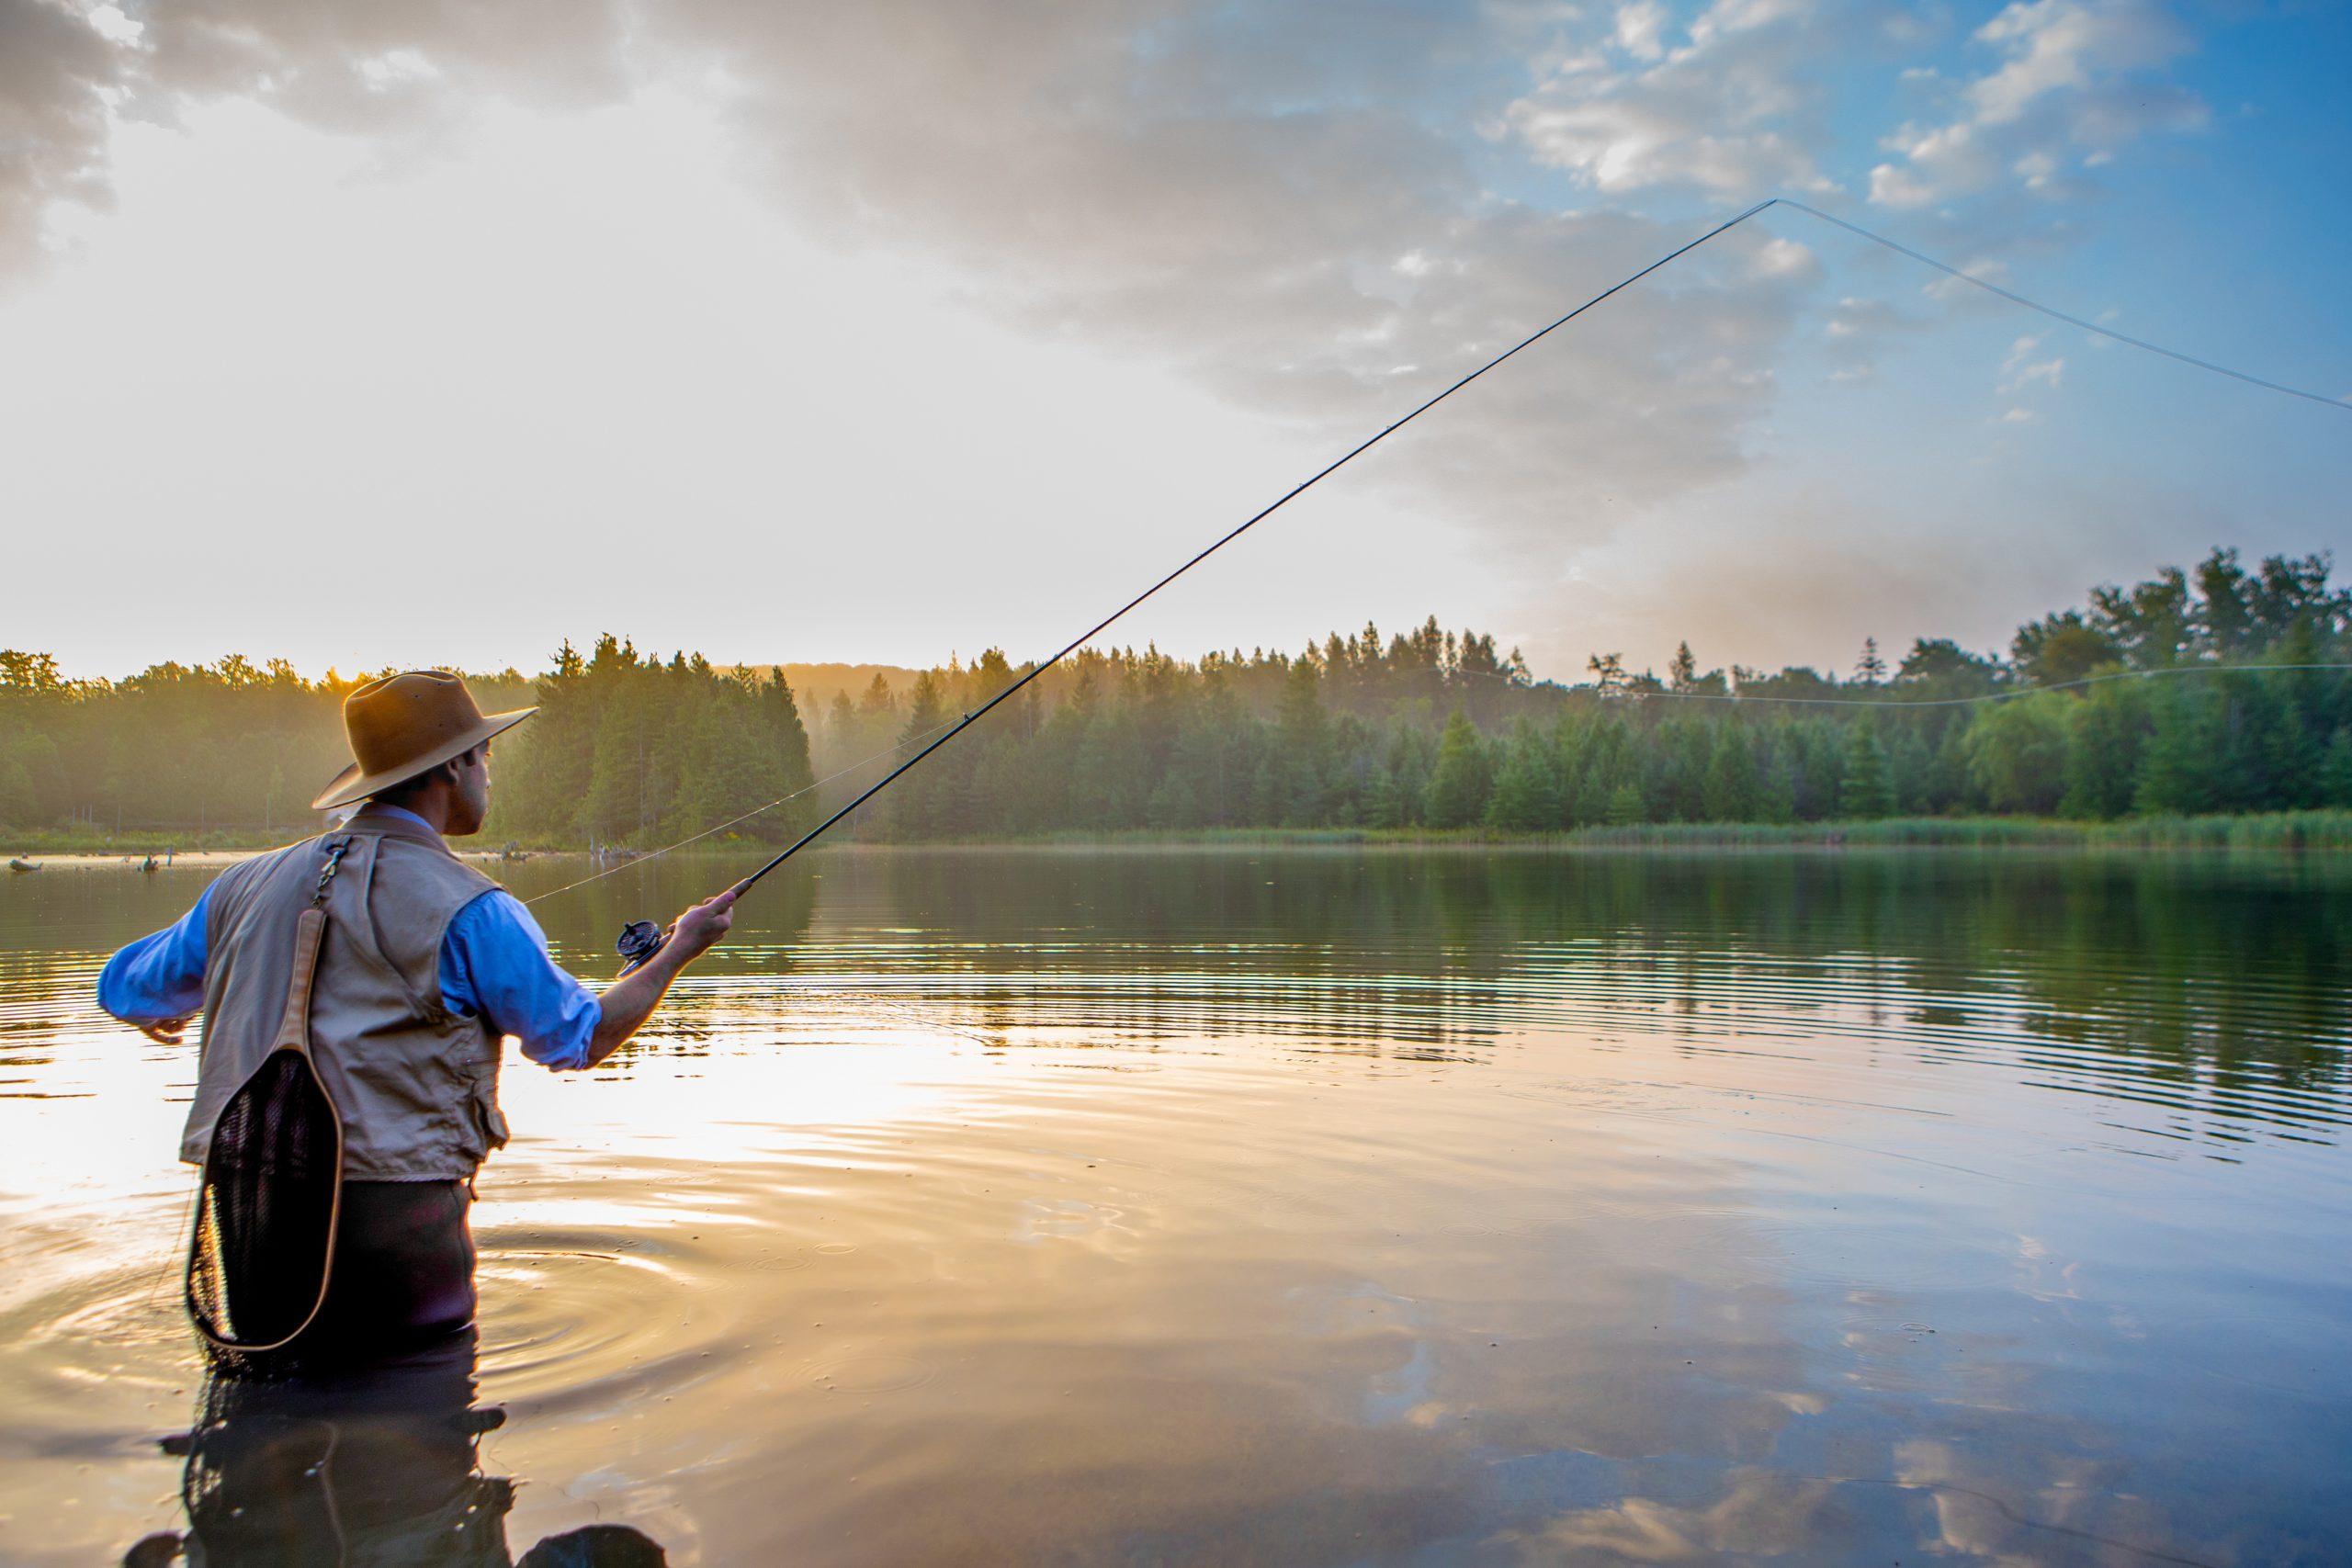 Man casting a fly rod into the water at sunrise.